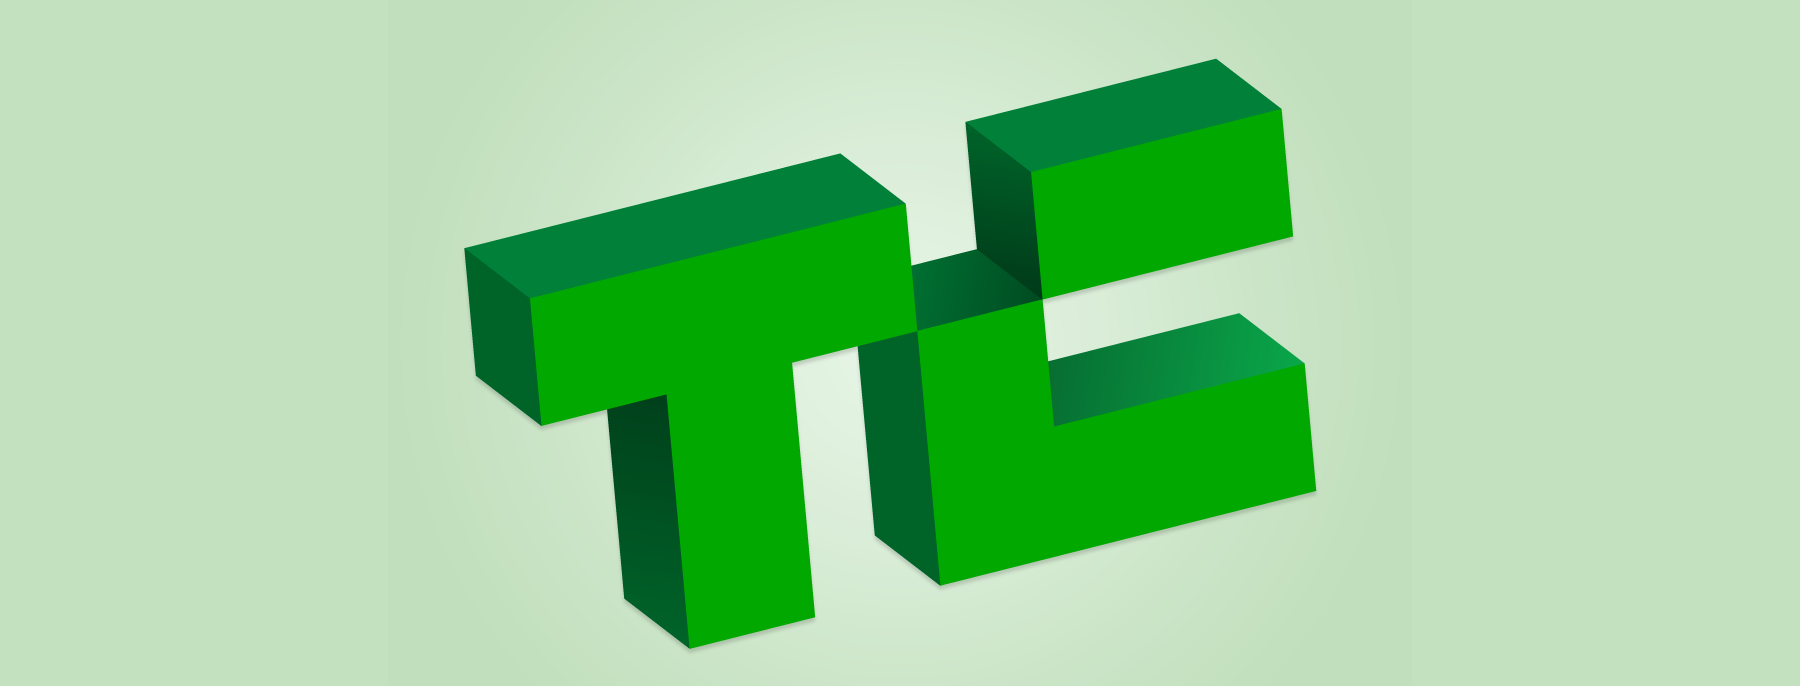 The Most Popular Article on TechCrunch.